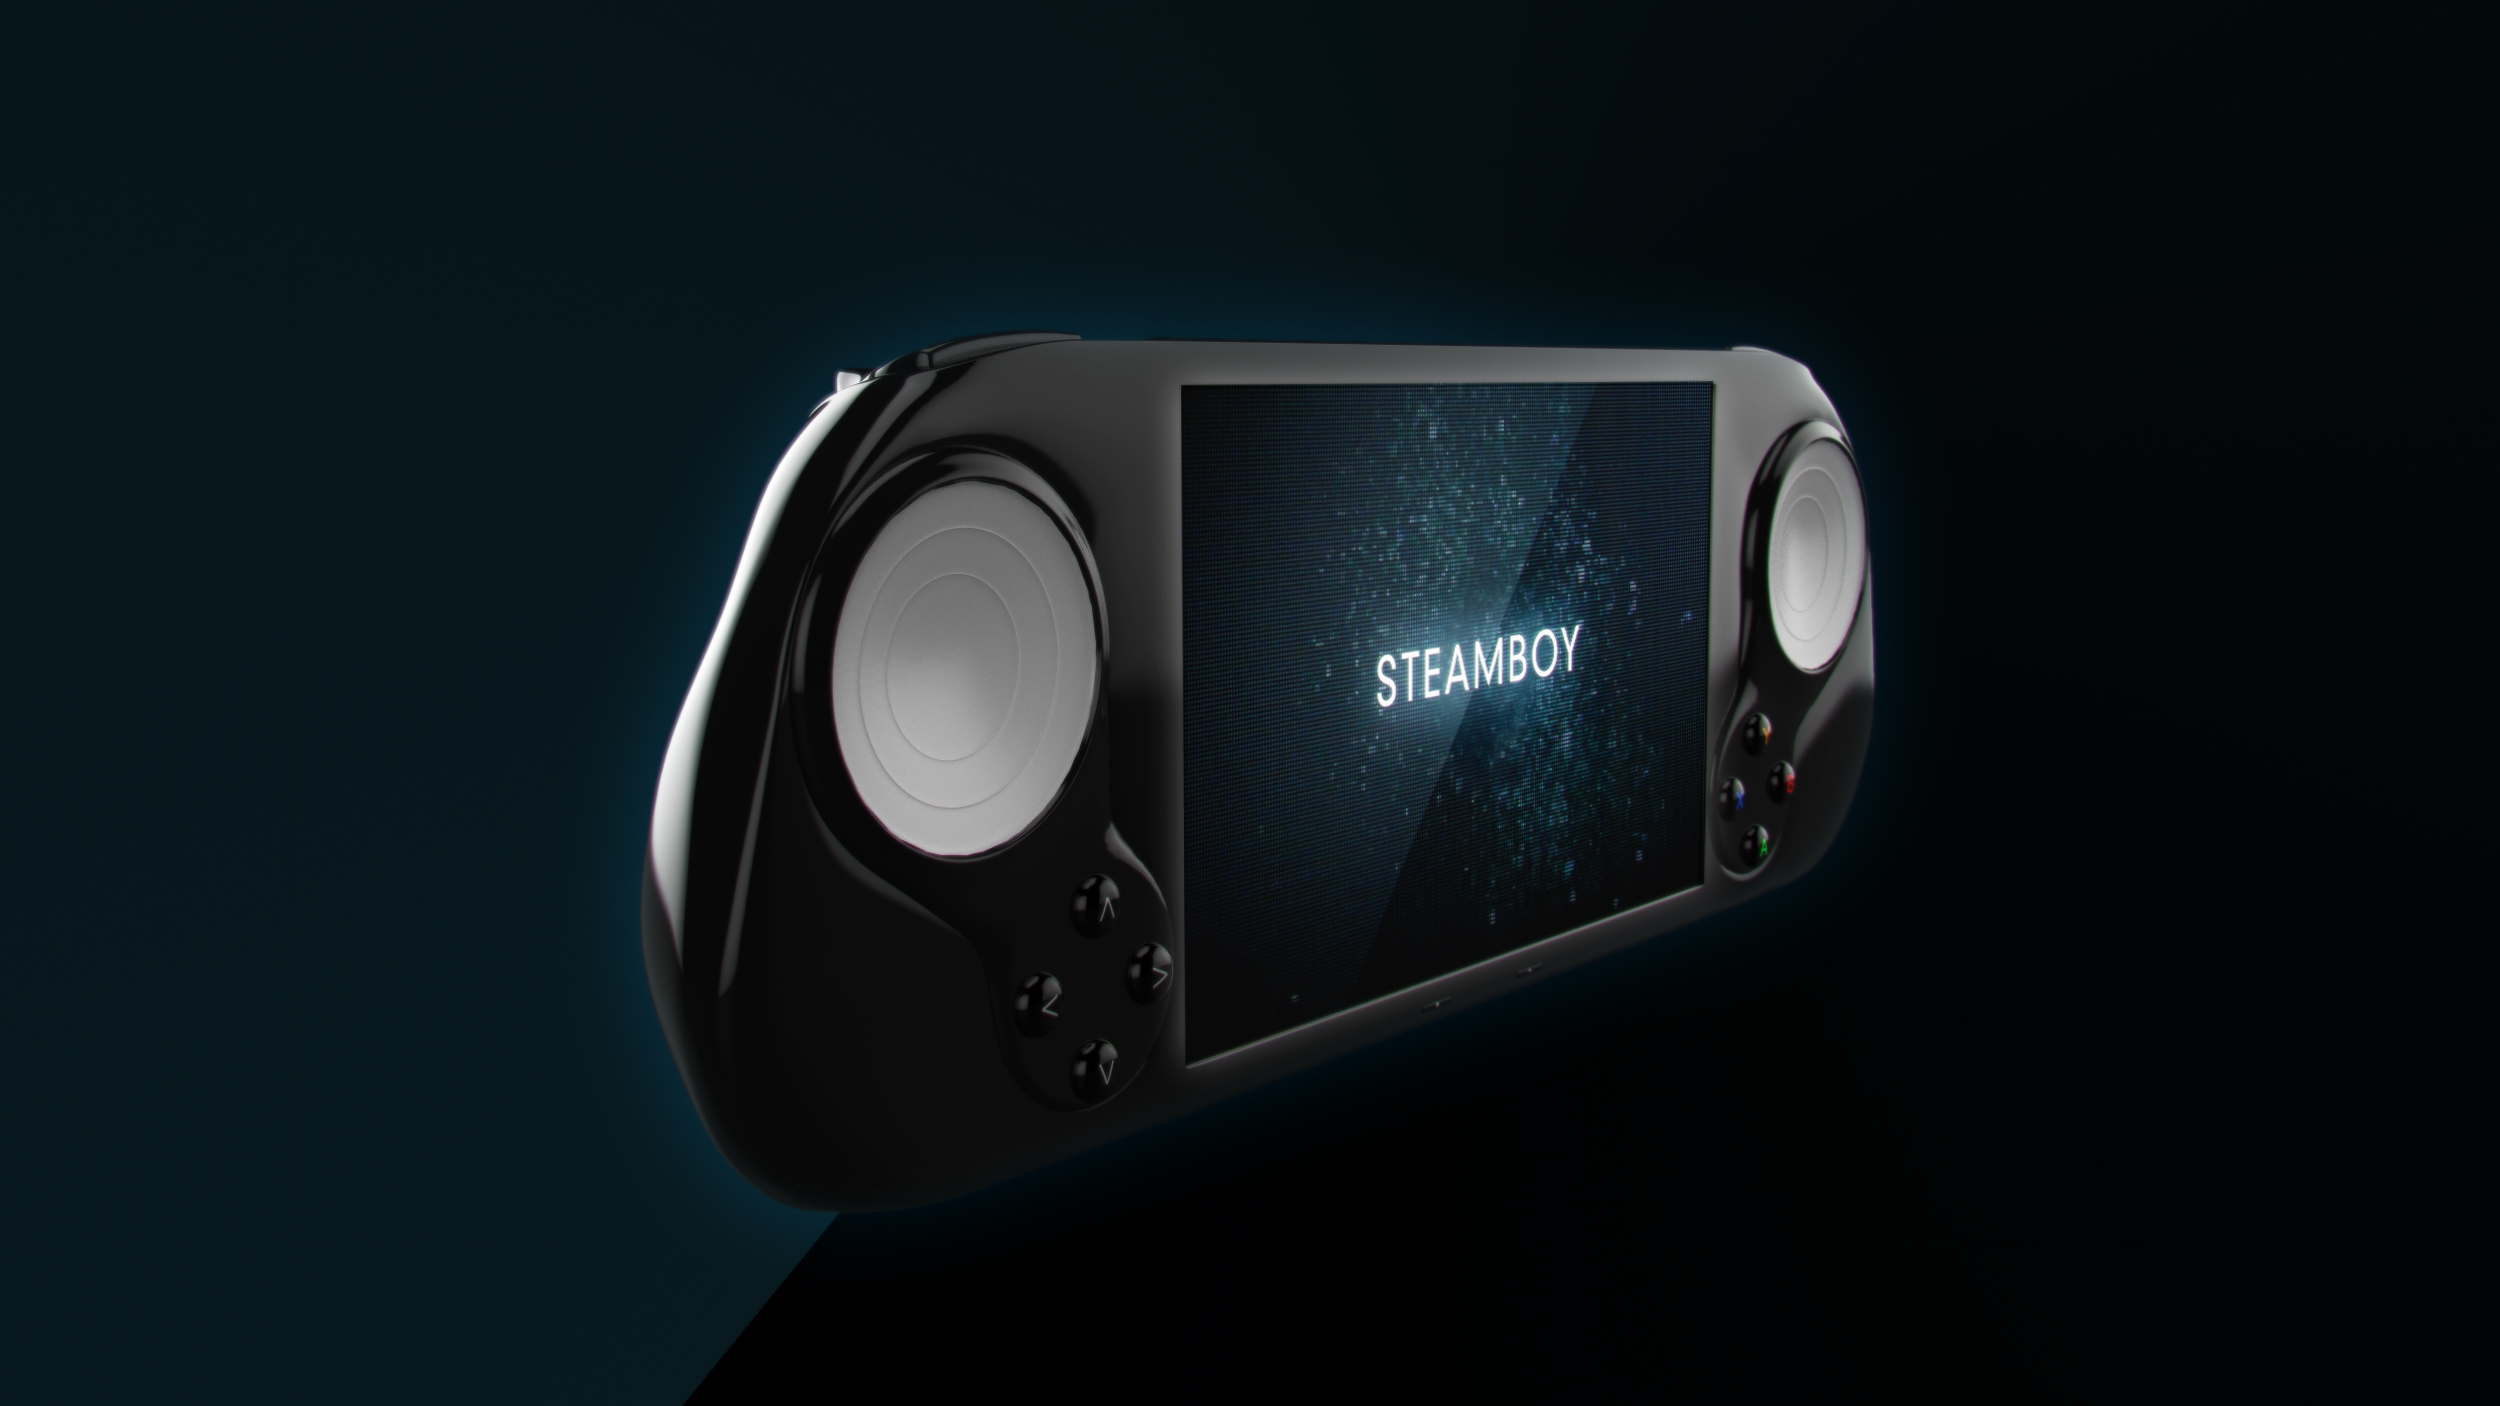 SteamBoy is a handheld device that lets you play your Steam games wherever you are